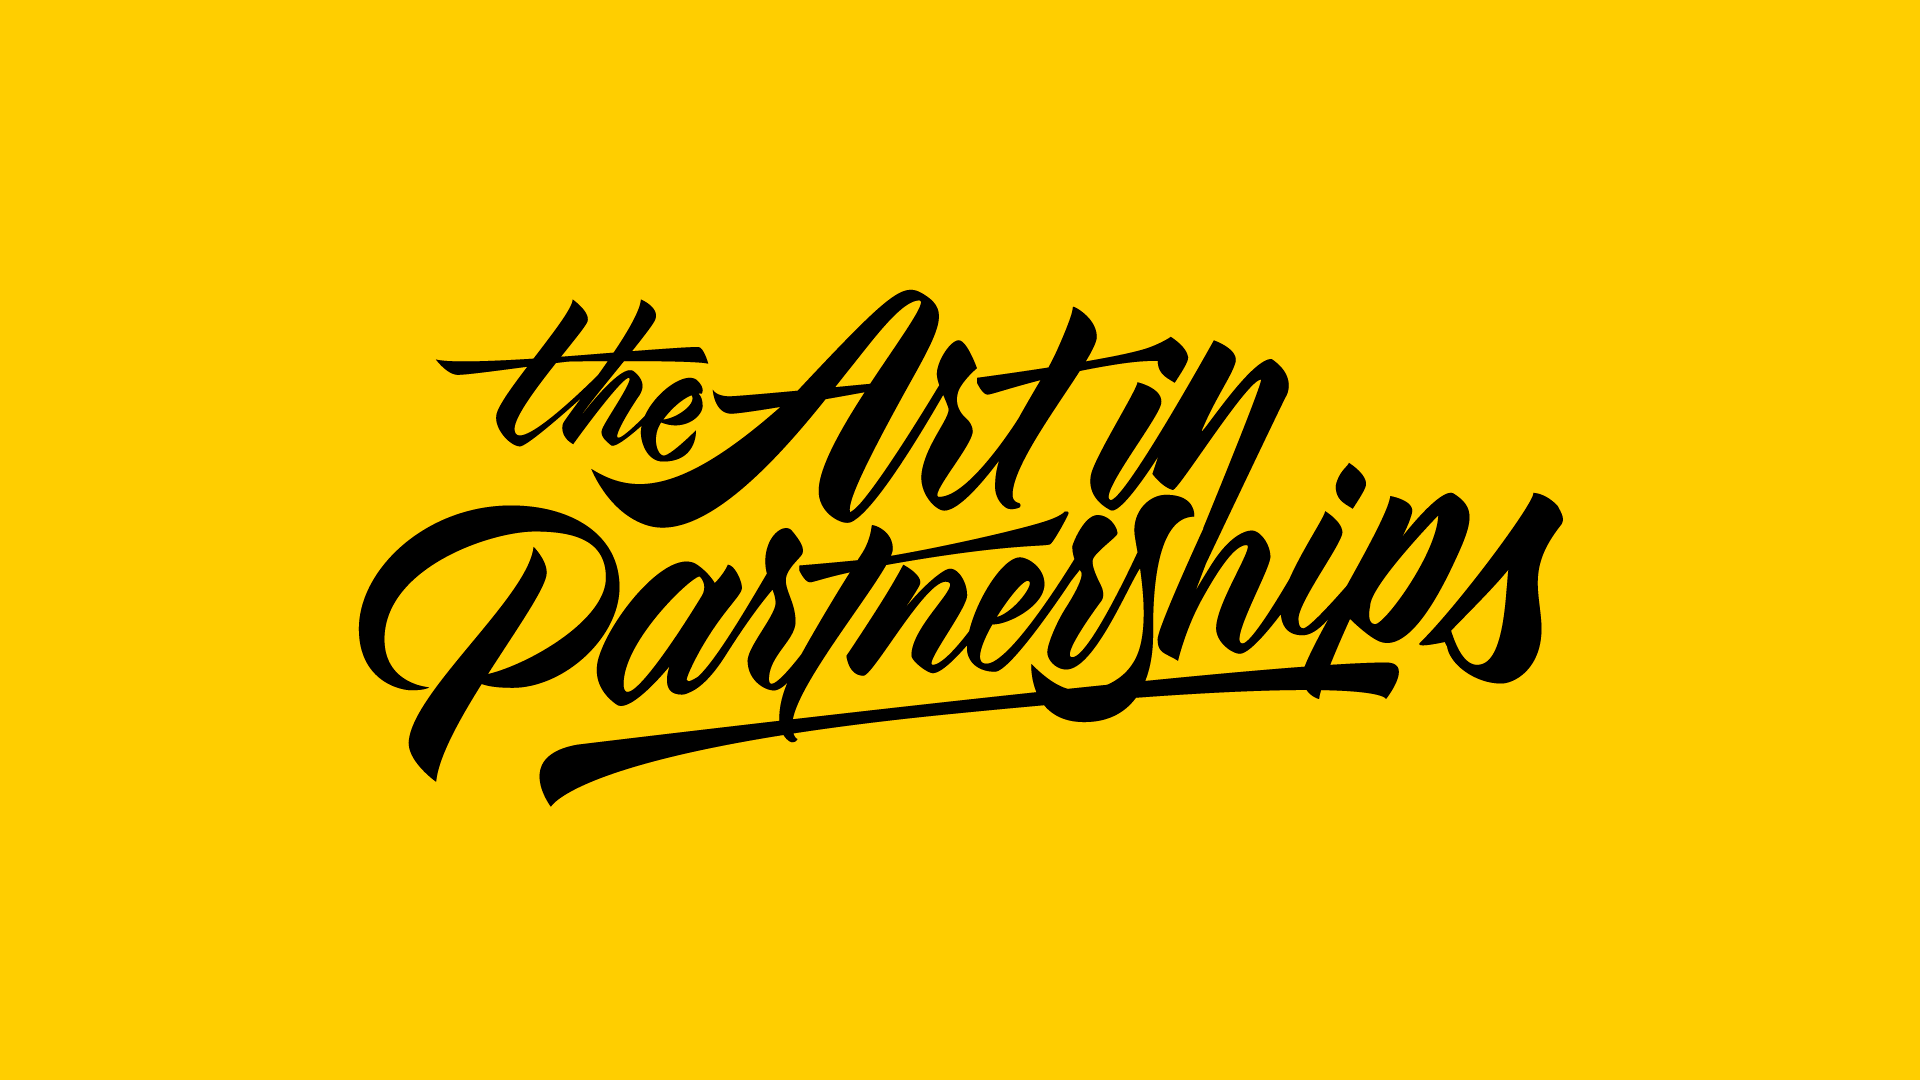 The 'art' in pARTnerships